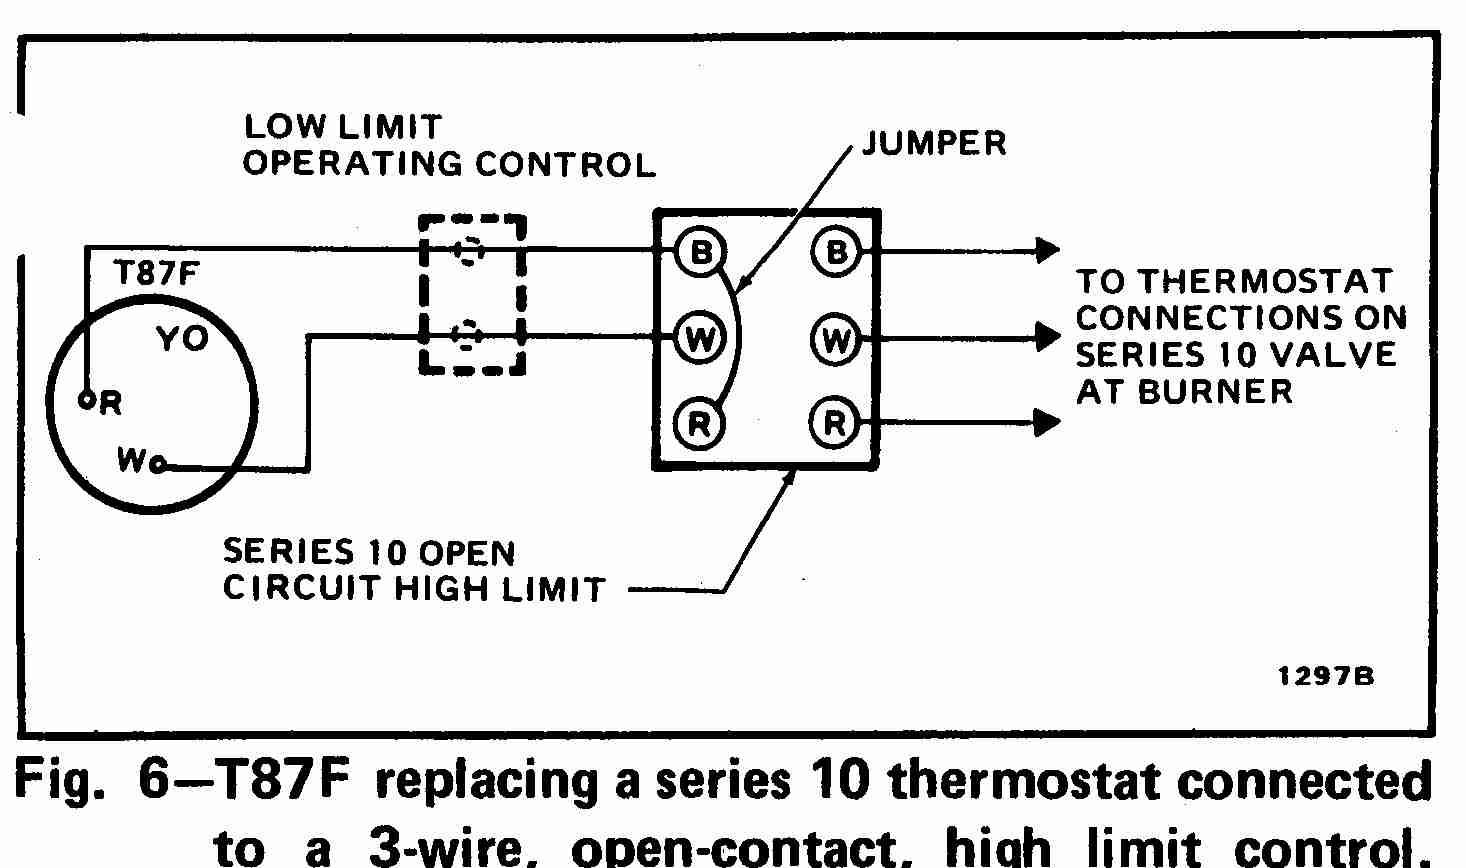 TT_T87F_0002_3WHL_DJF room thermostat wiring diagrams for hvac systems imit boiler thermostat wiring diagram at gsmx.co